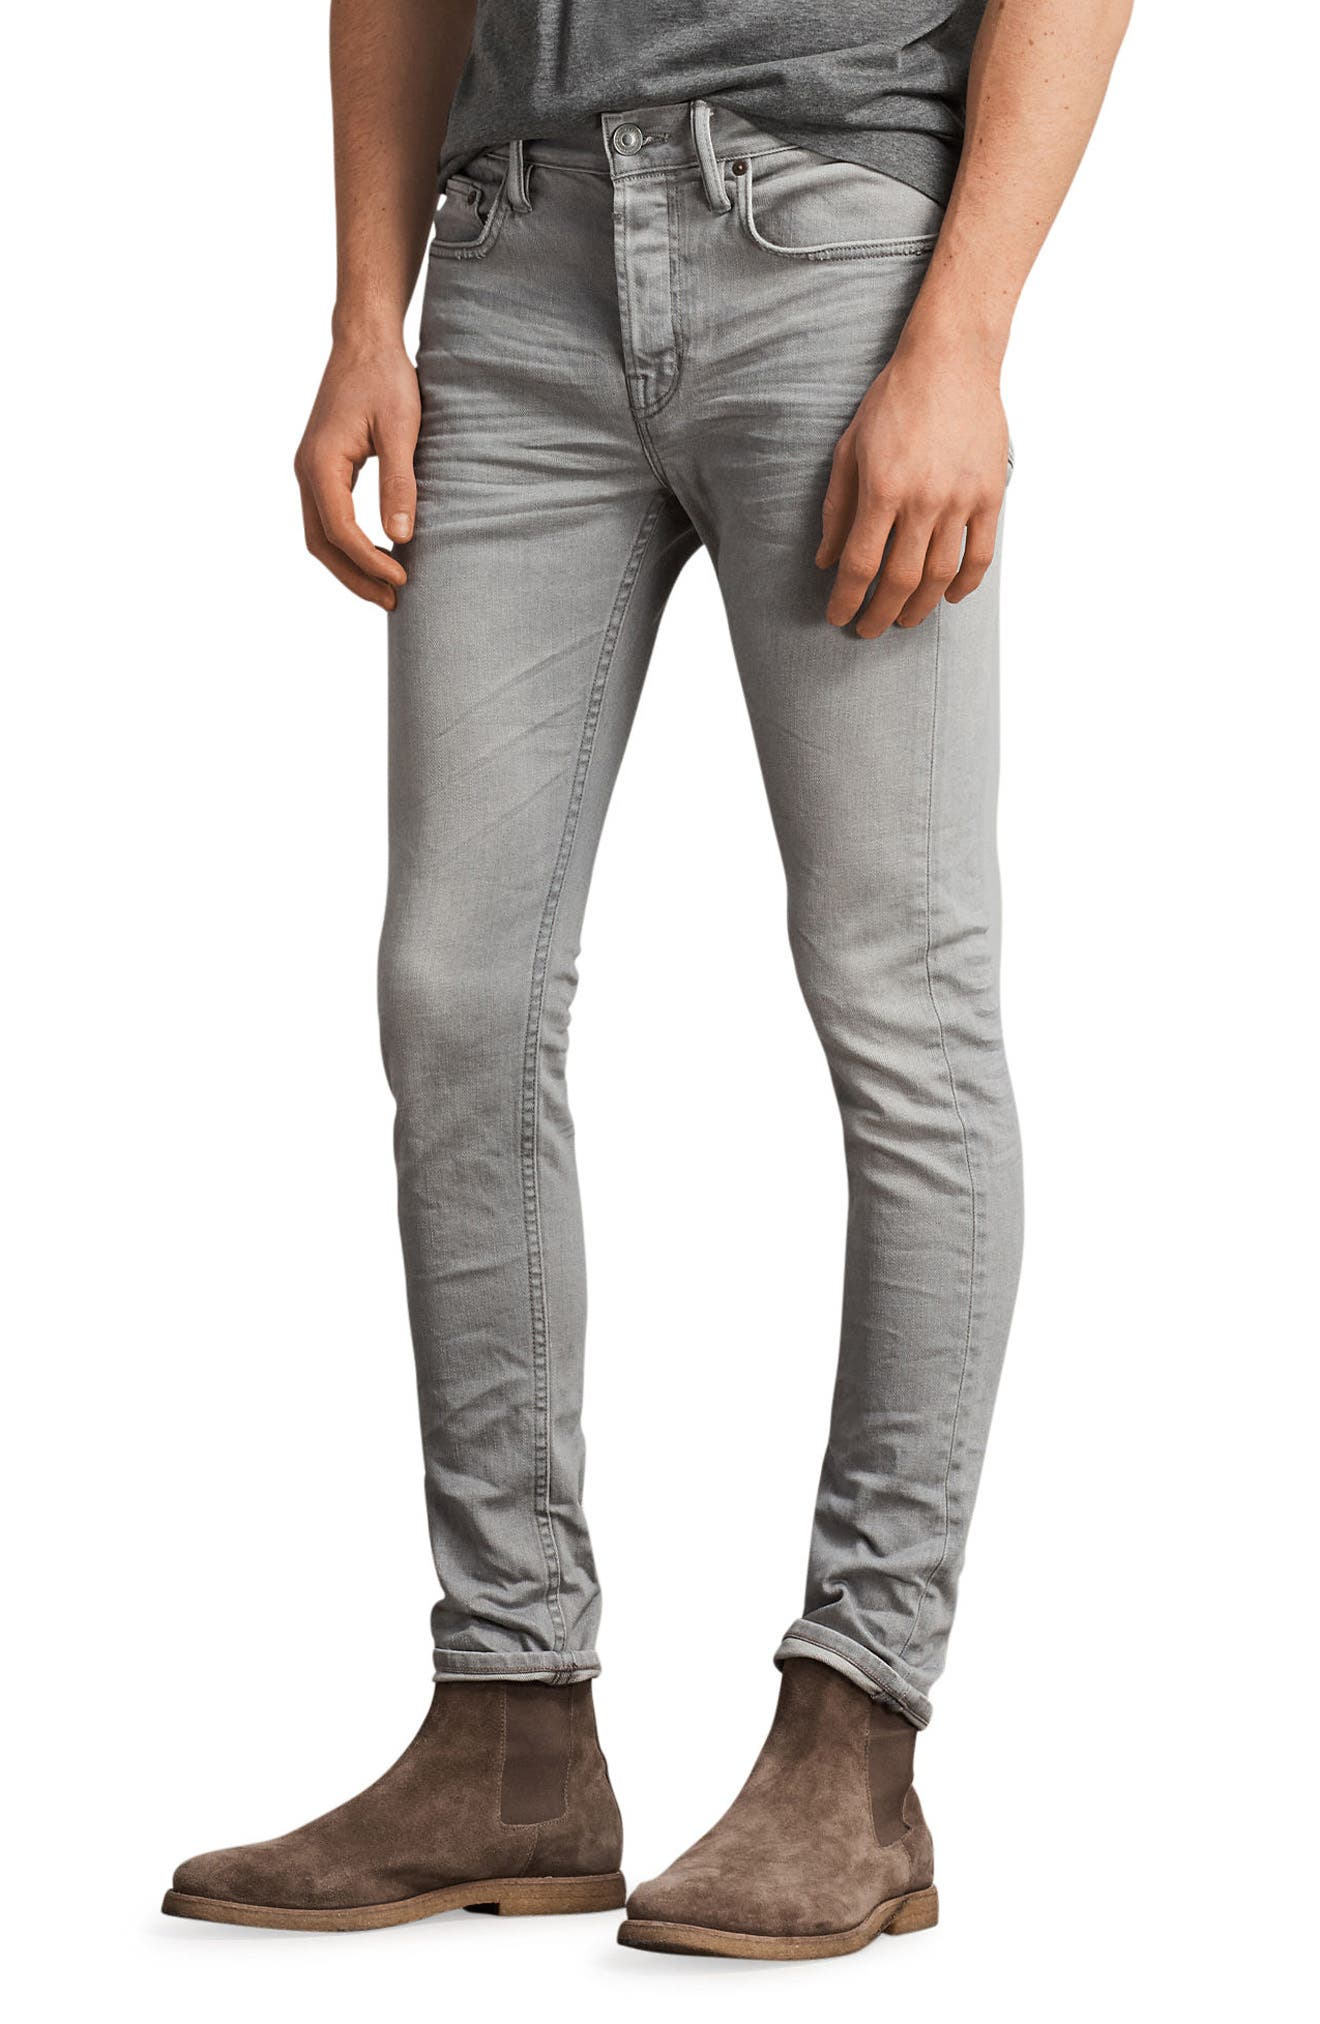 Ghoul Skinny Fit Jeans,                         Main,                         color, Grey